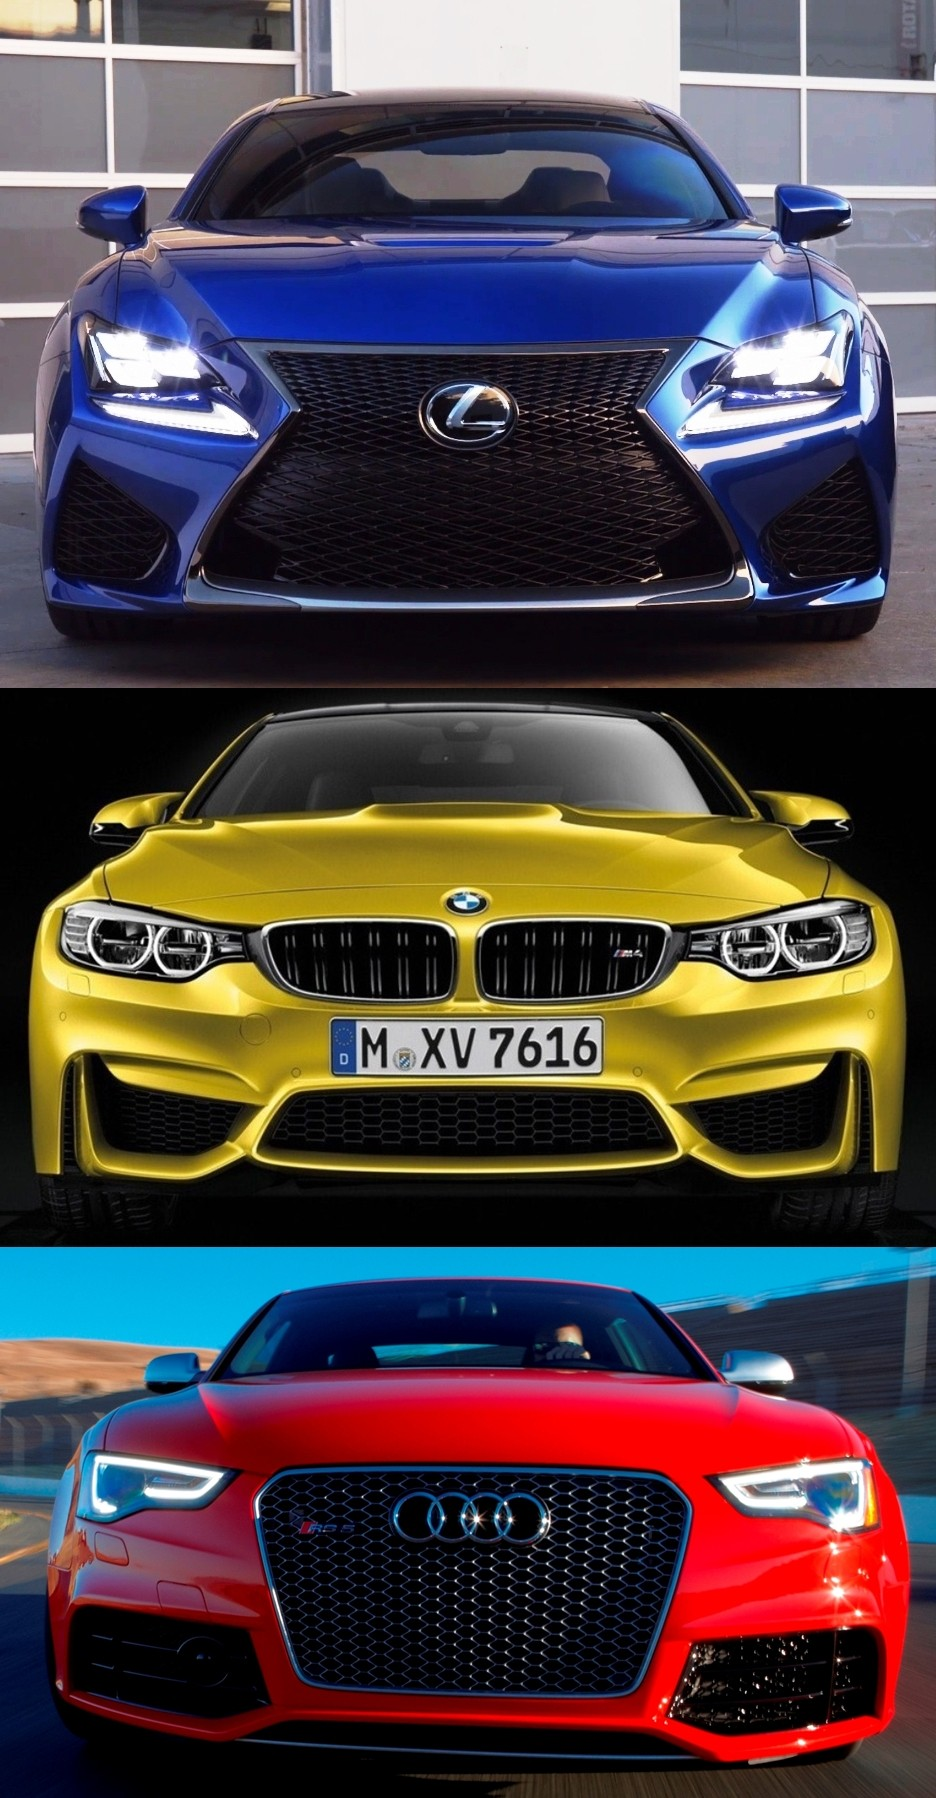 2015 Supercoupe Design Shootout Lexus Rc F Vs Bmw M4 Vs Audi Rs5